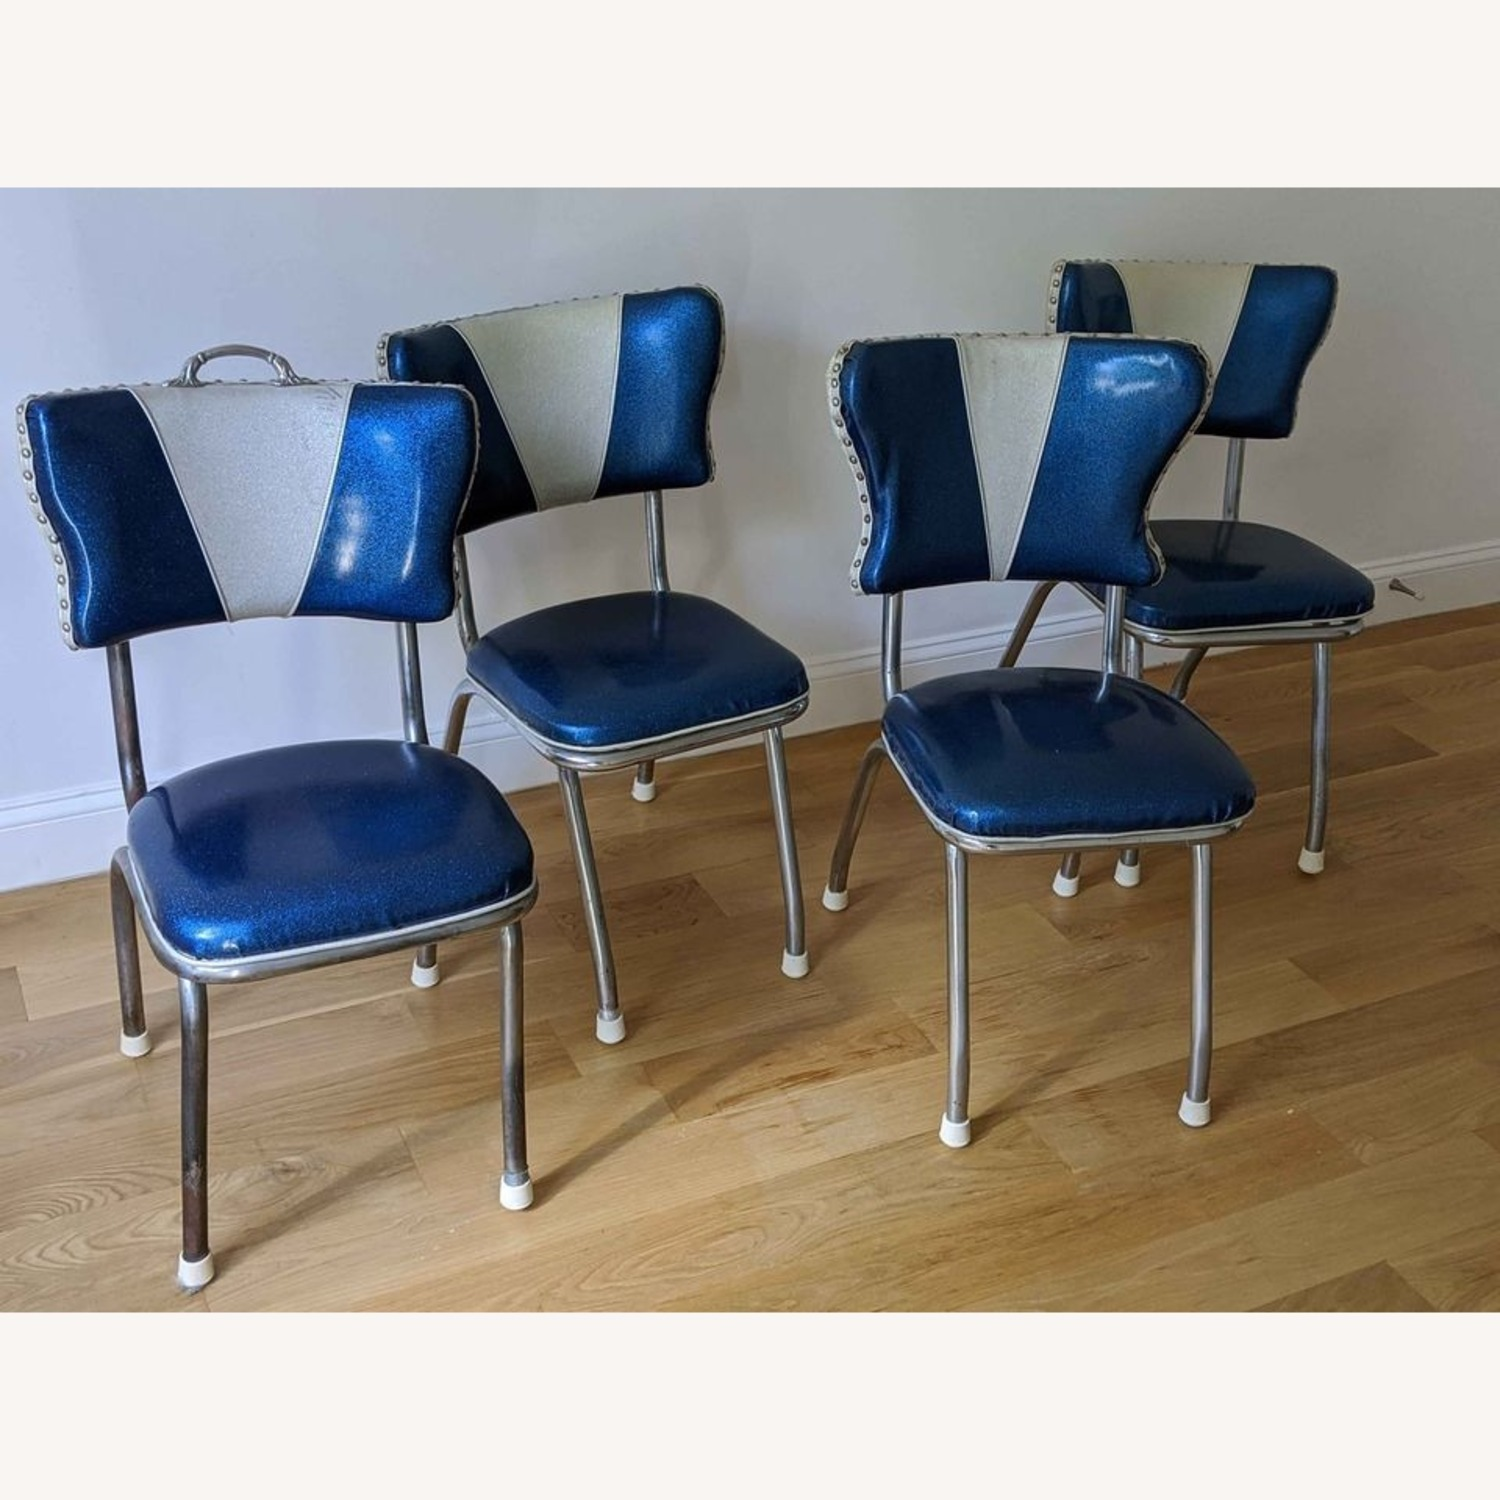 Vintage Diner-Style Chairs and Formica Table - image-2